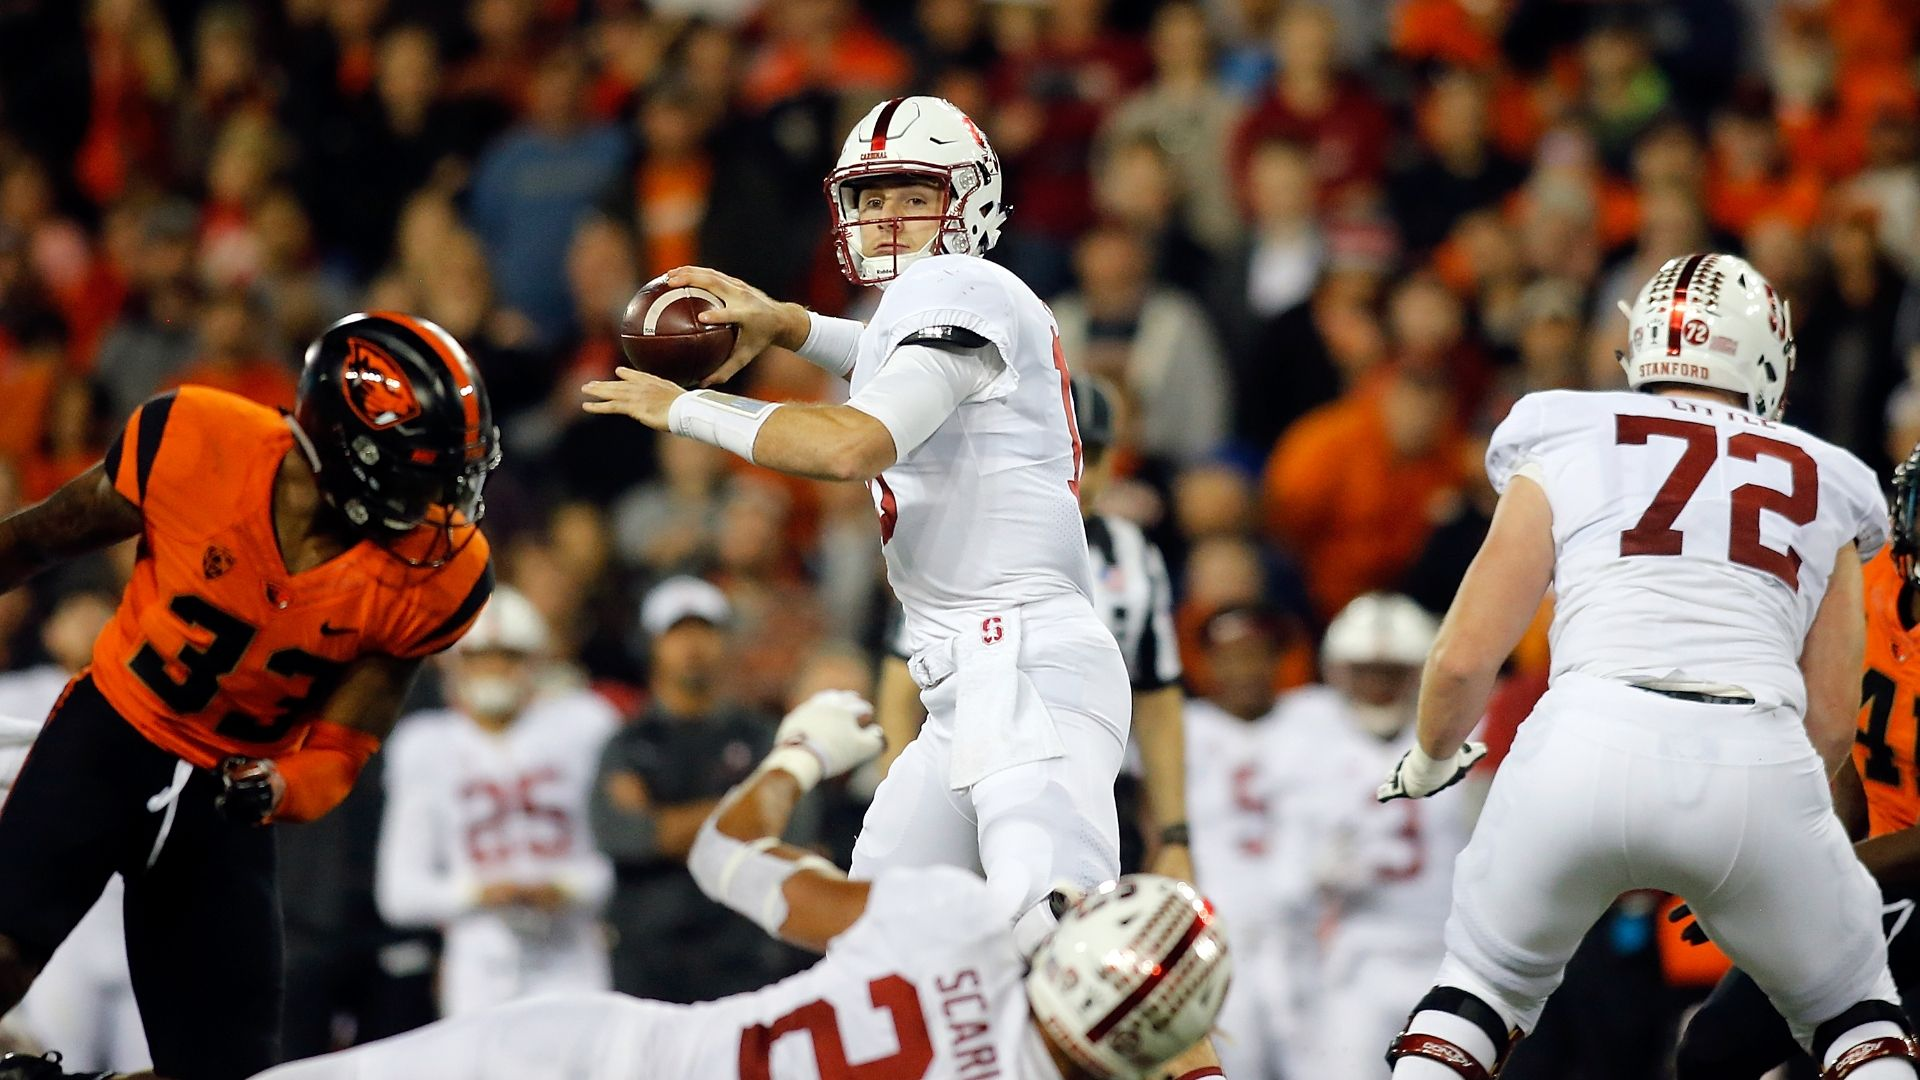 Stanford squeaks by Oregon State with late TD